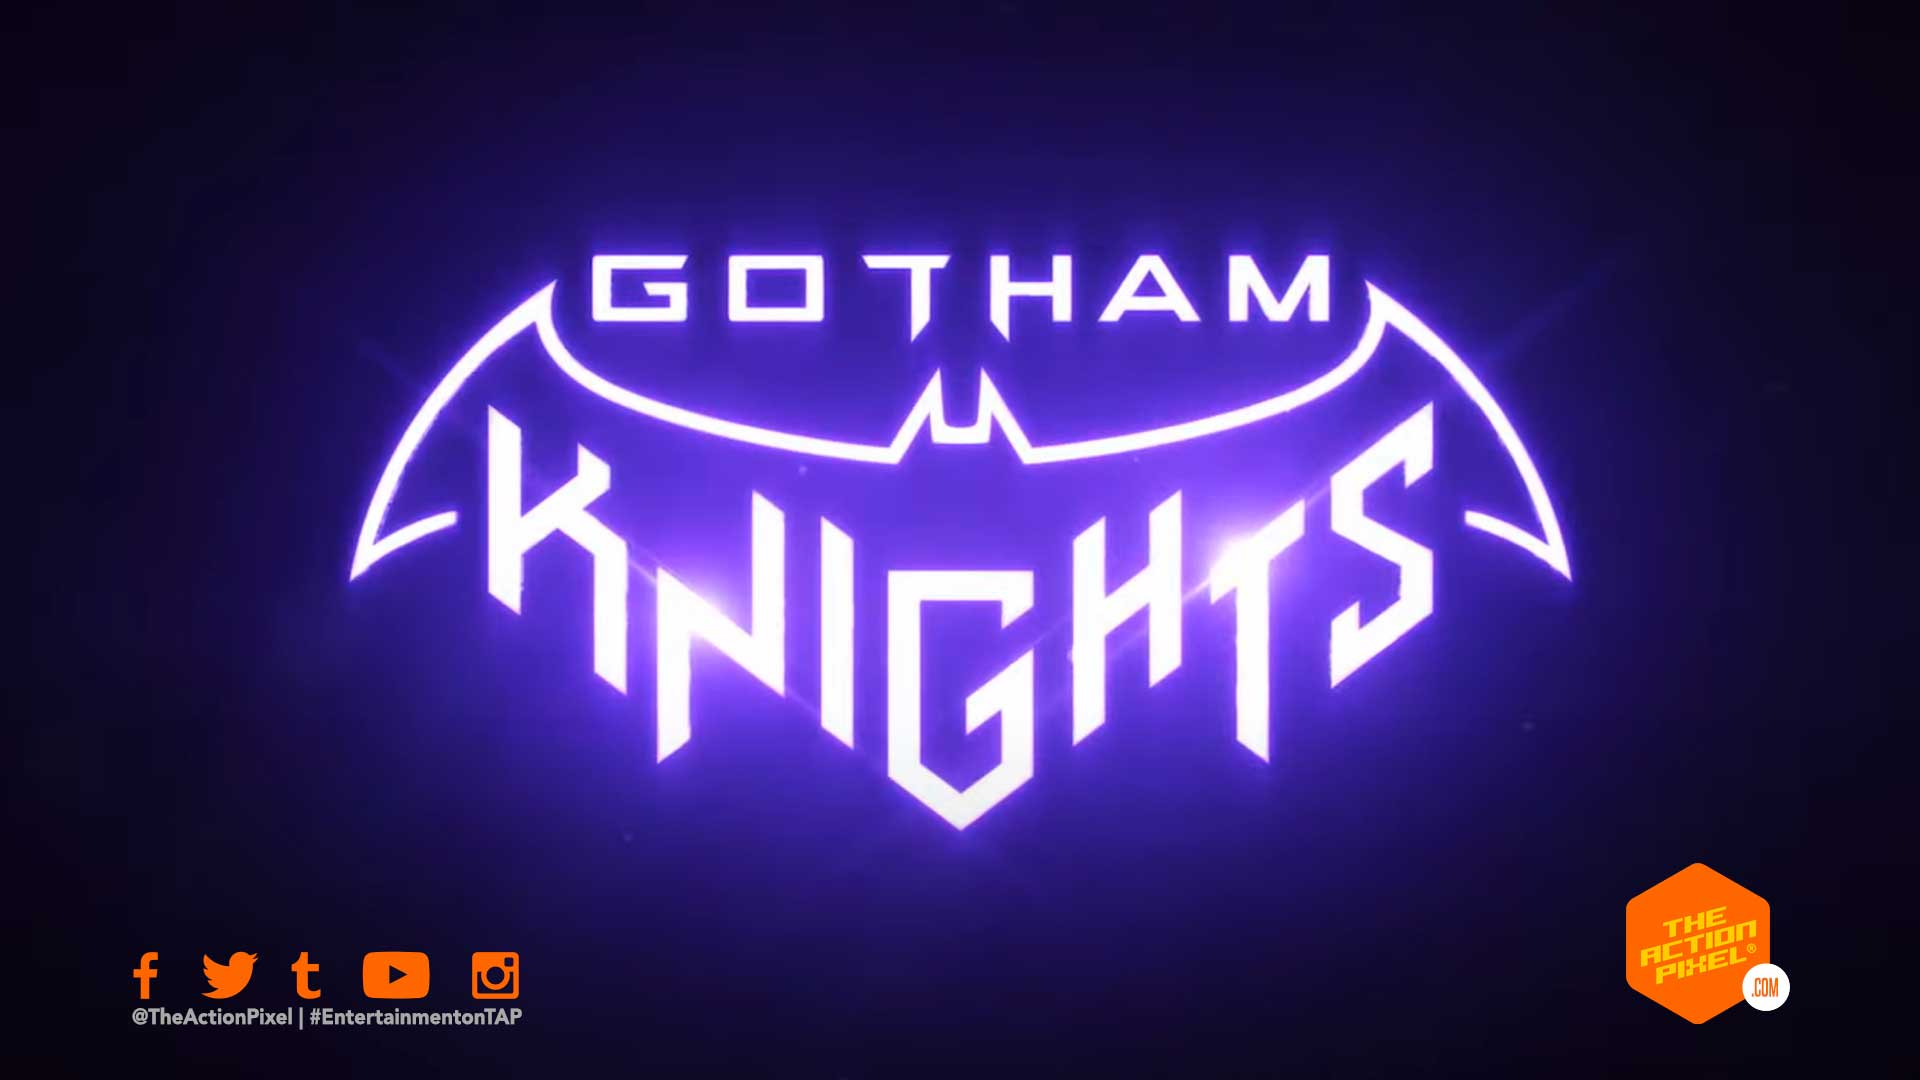 gotham knights, world premiere, dc fandome, dc fandome 2020, redhood, batgirl, batman, red hood, nightwing, robin, gotham knights game, featured, the action pixel, entertainment on tap, dc comics,